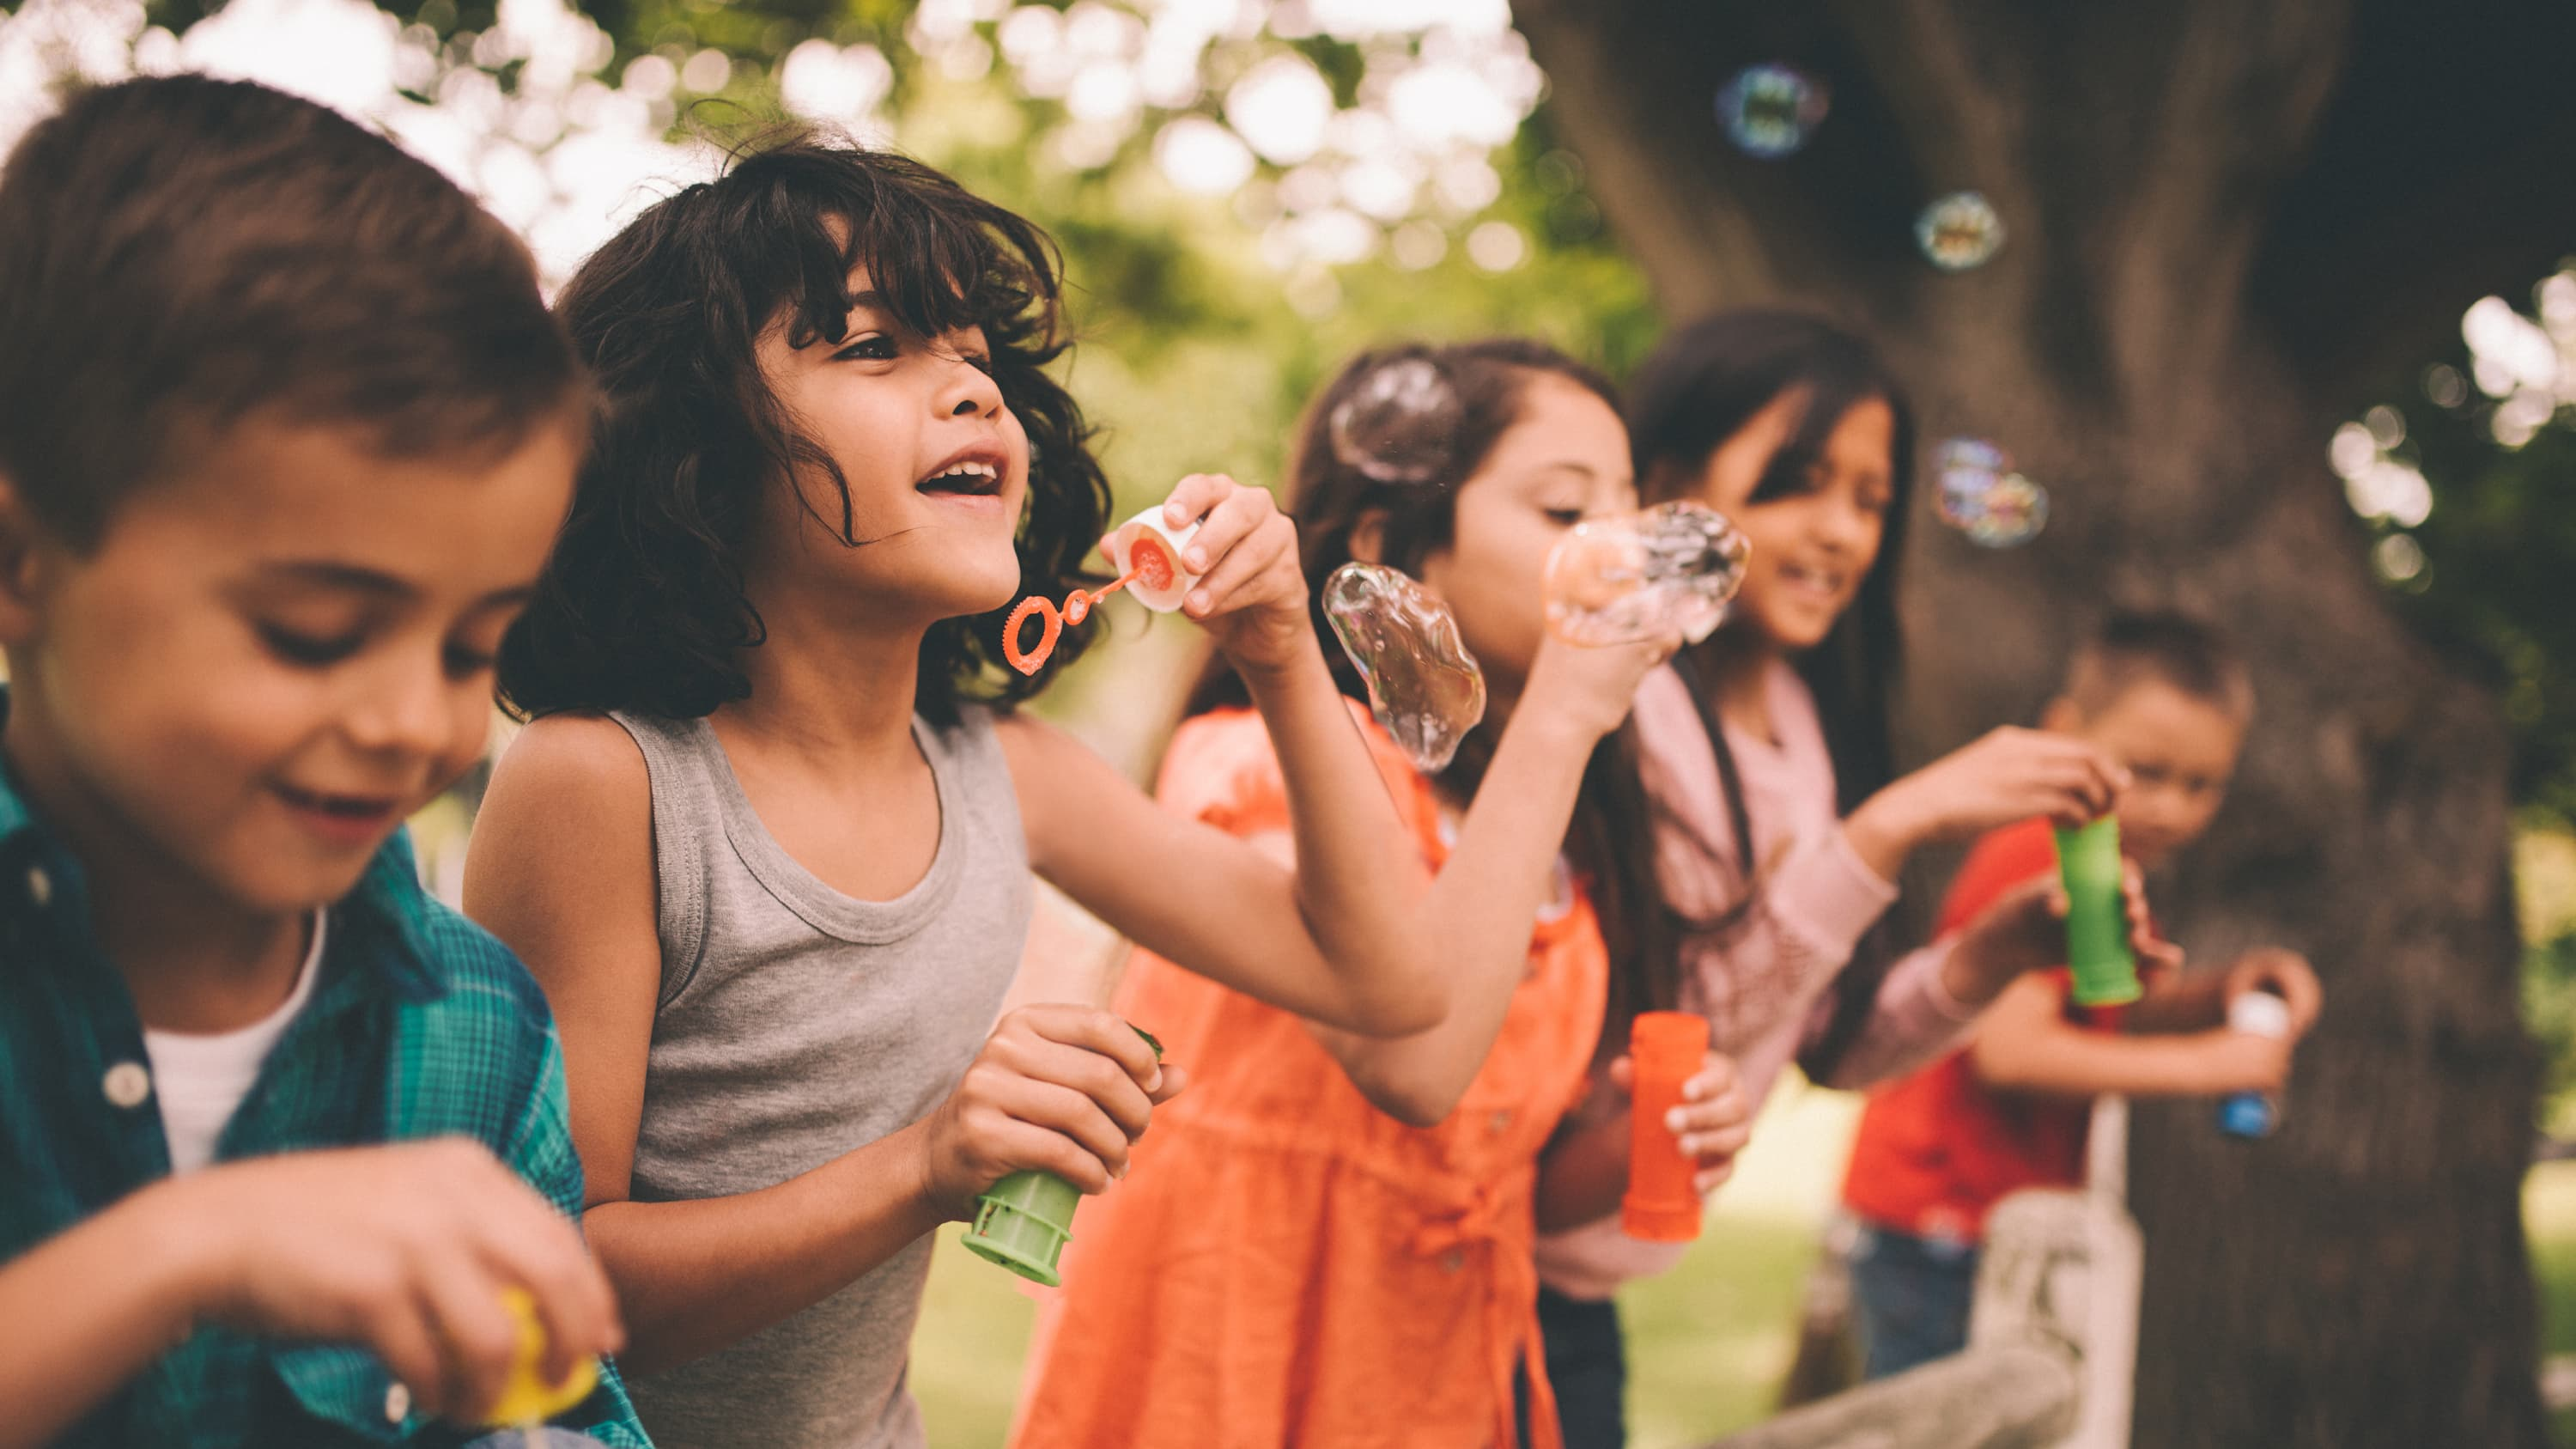 A child recovered from a brain tumor plays outside with friends.